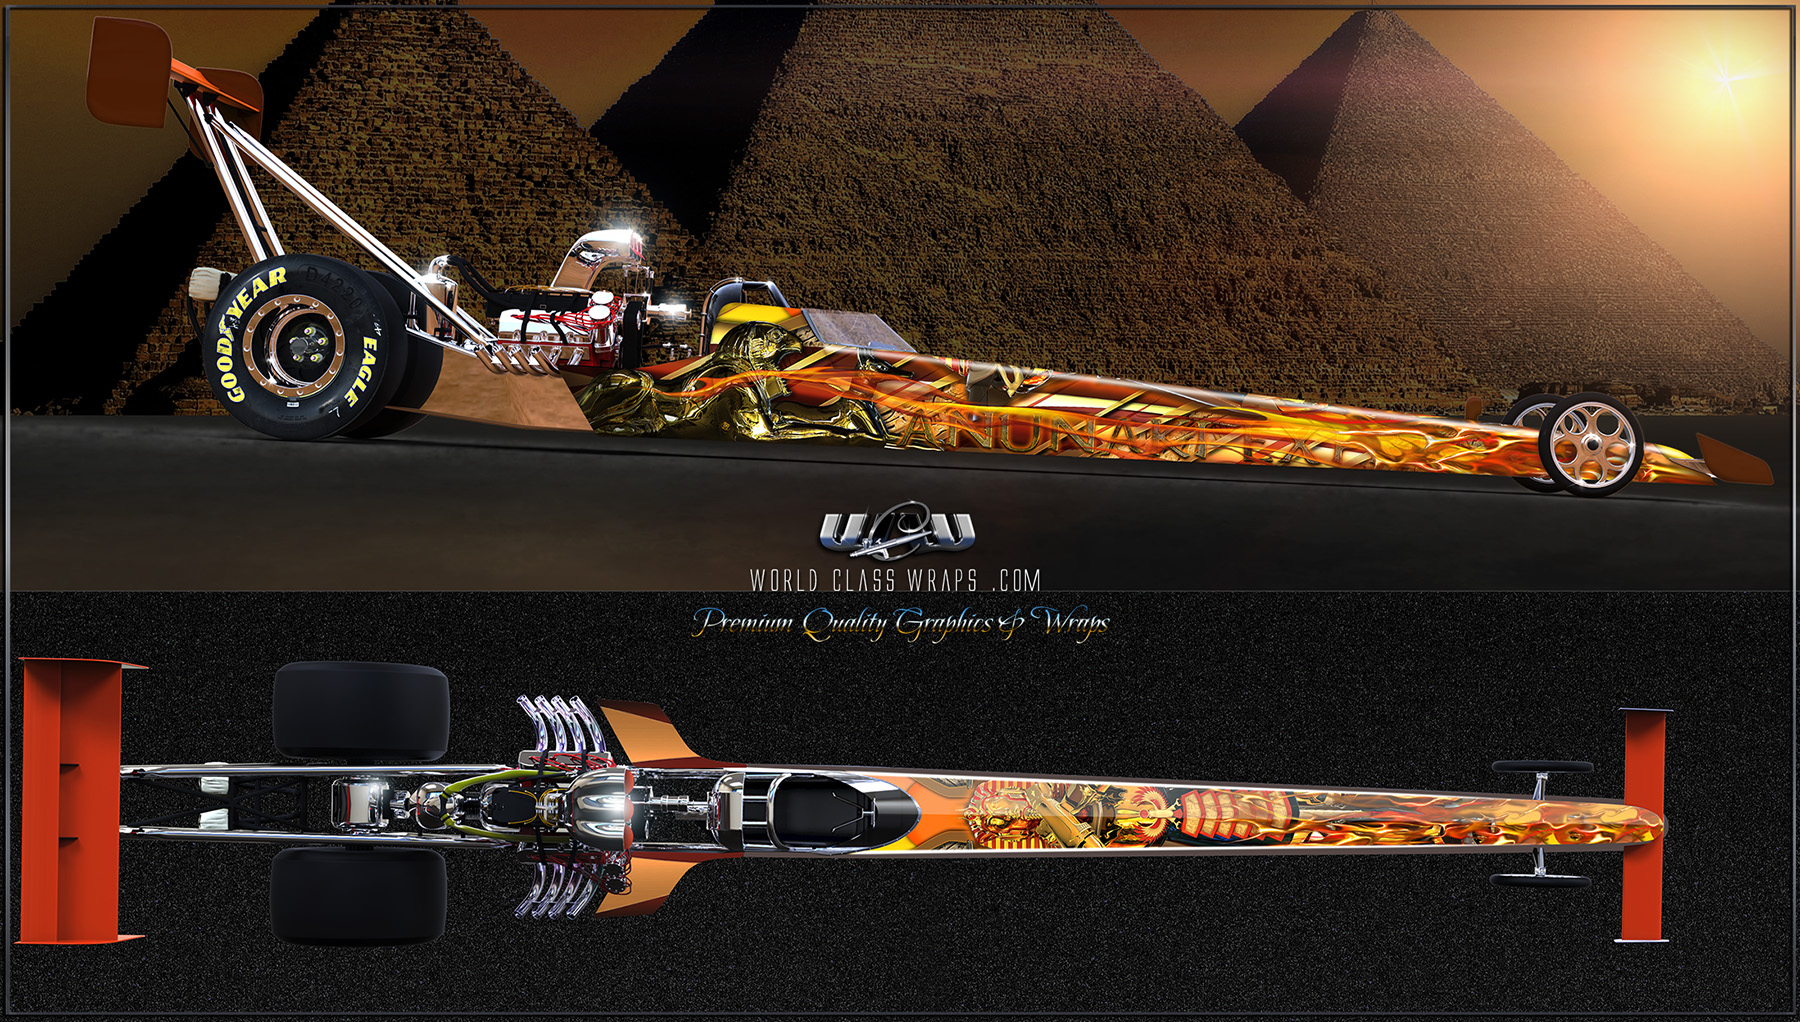 ANUNAKI EXPRESS DRAGSTER GRAPHICS